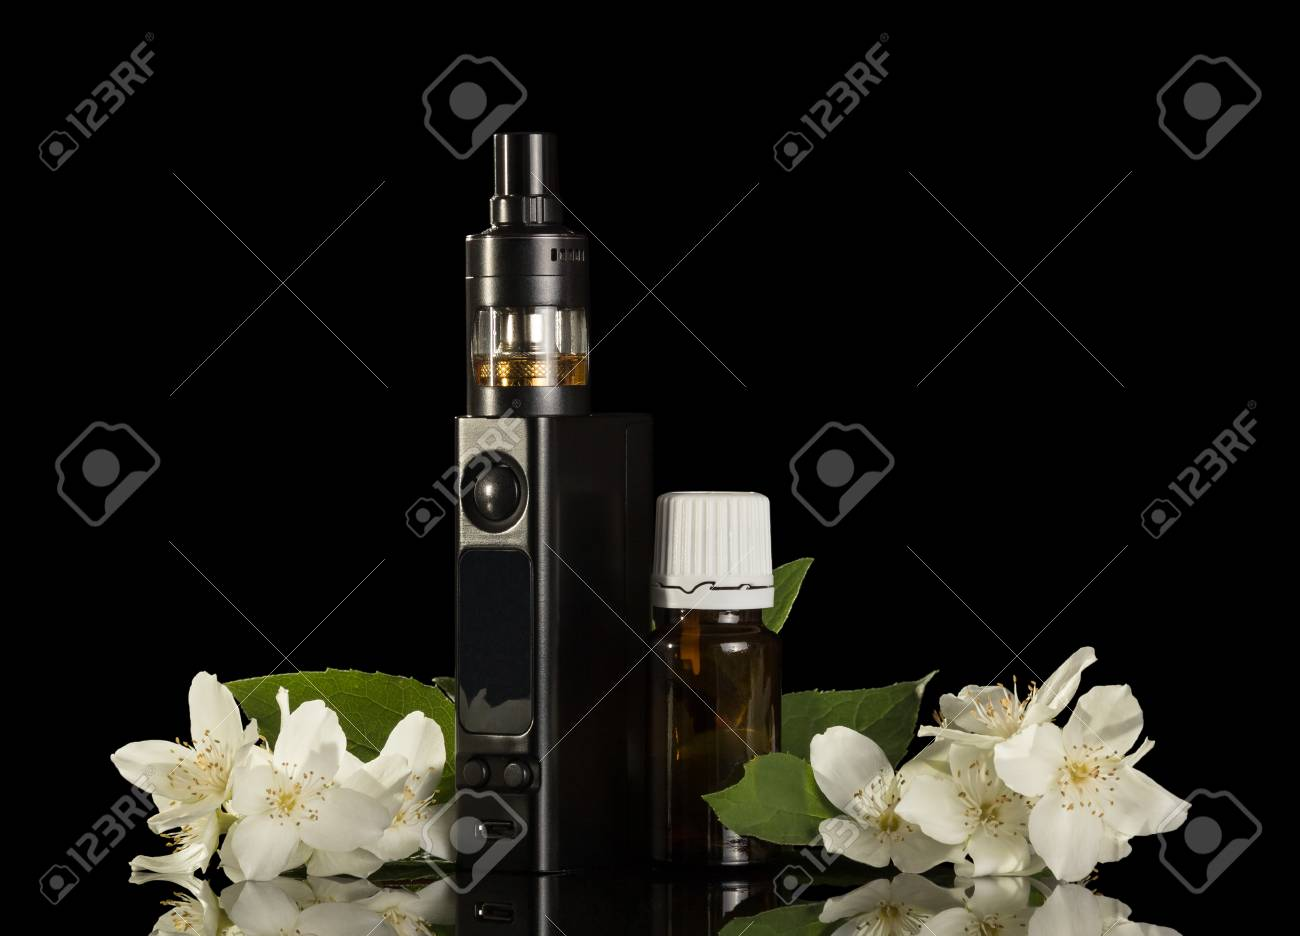 Electronic cigarette and liquid with floral scent isolated on